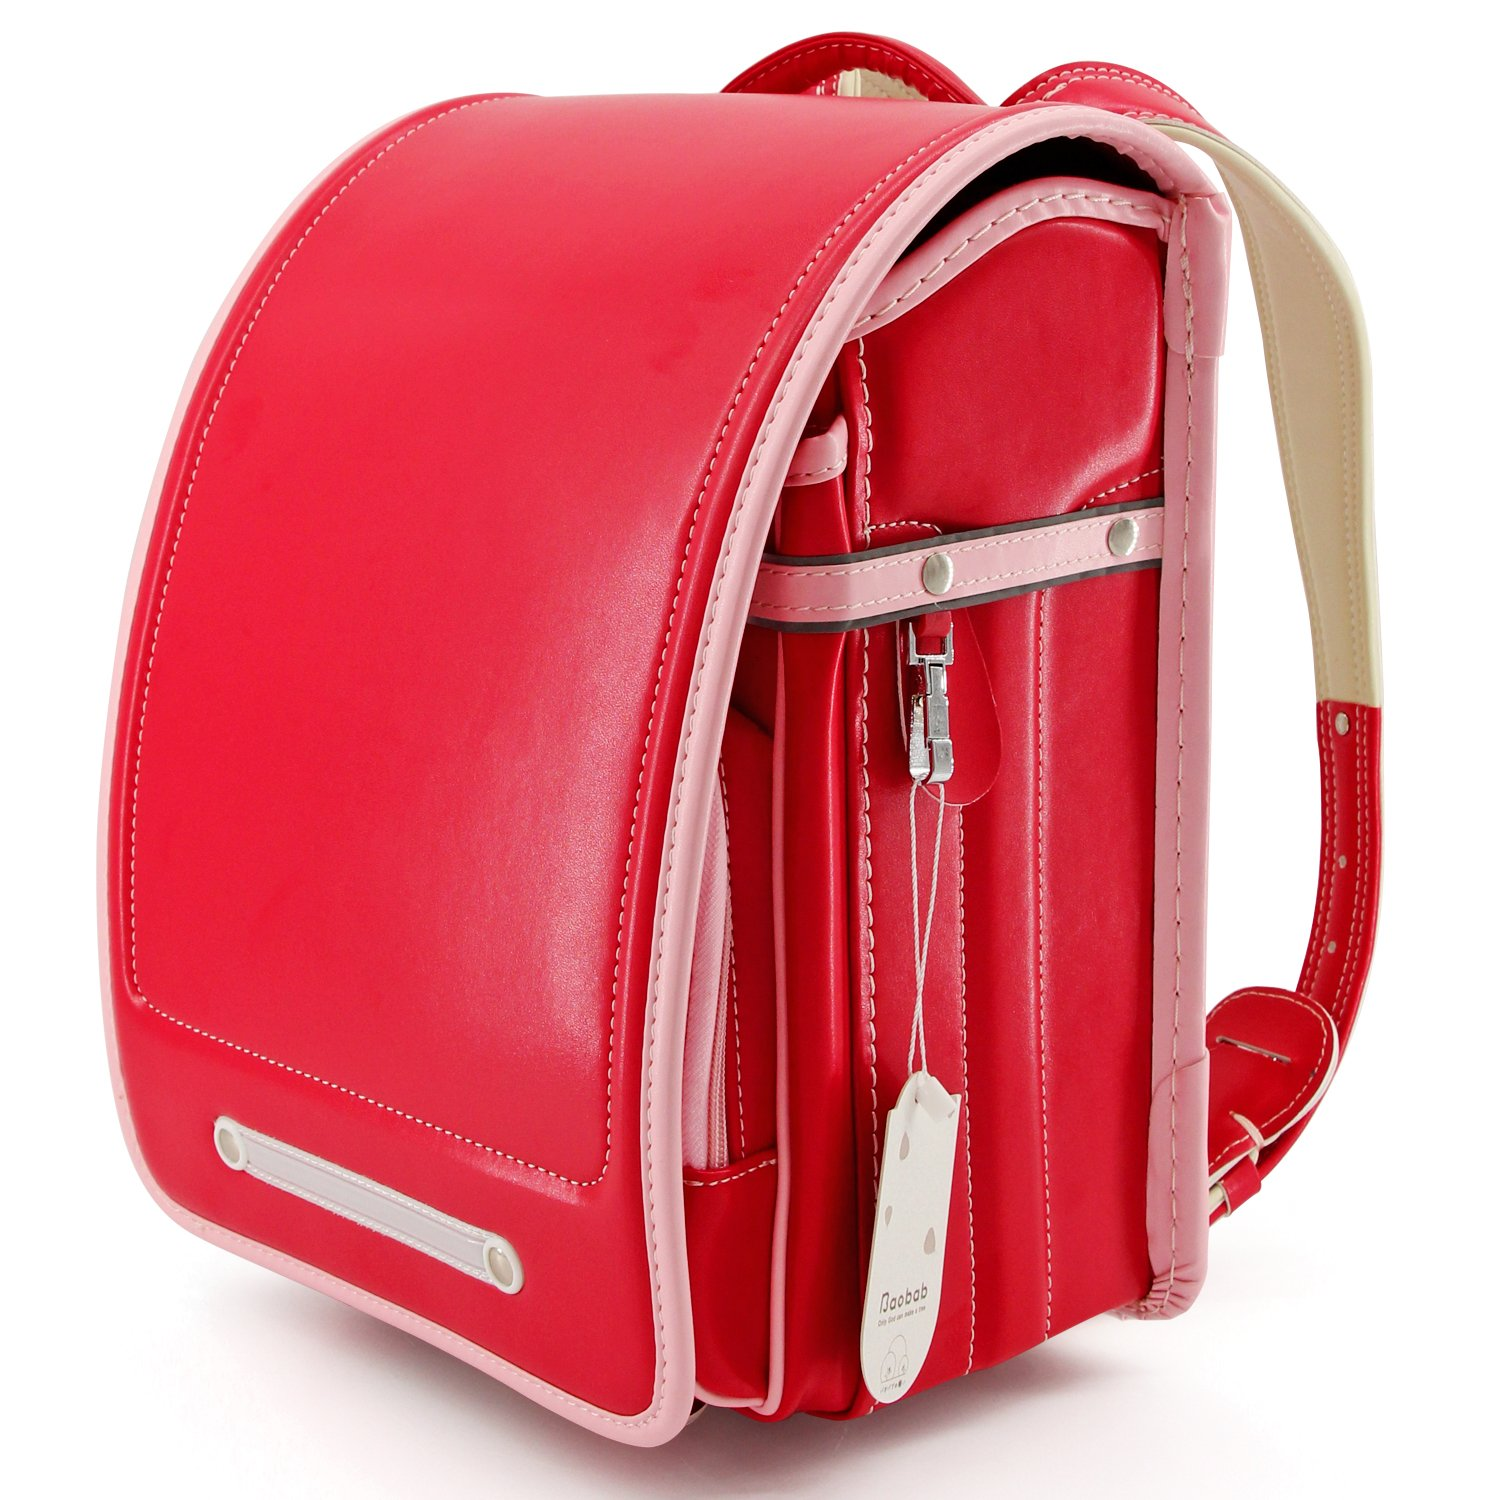 Ransel Randoseru Semi-automatic Japanese school bag for girls Senior PU leather Large capacity light weight Rain Cover (red)